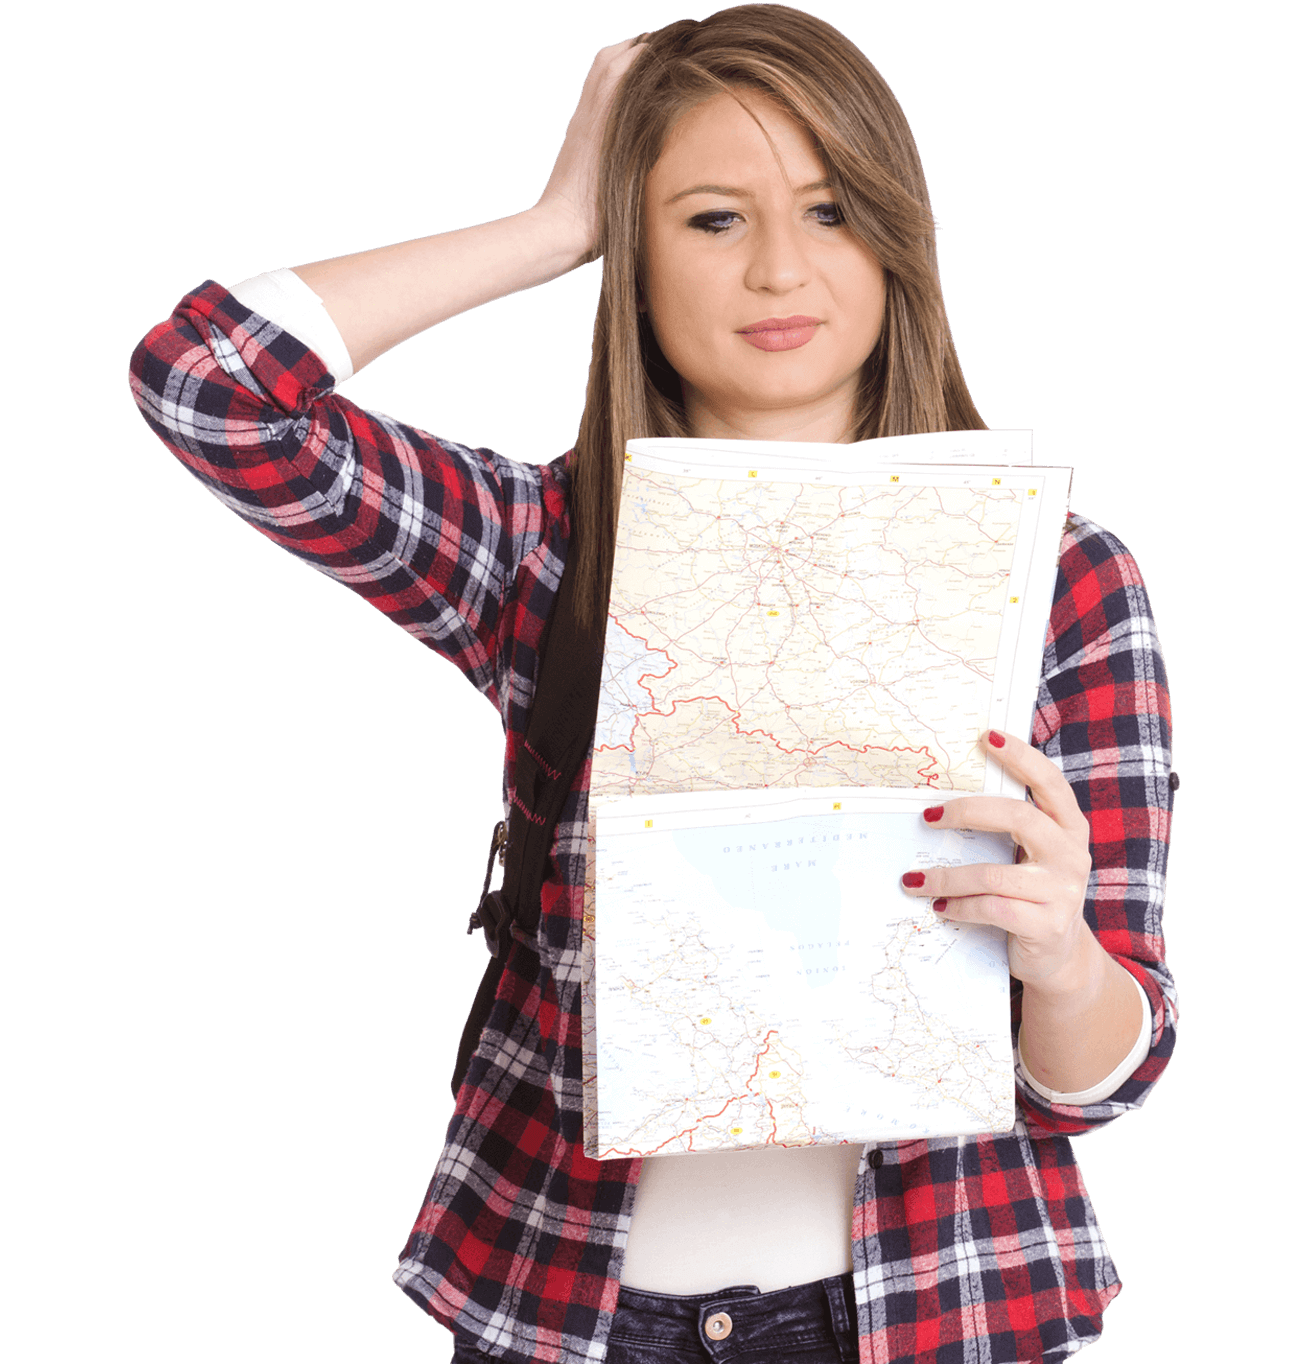 girl-with-map